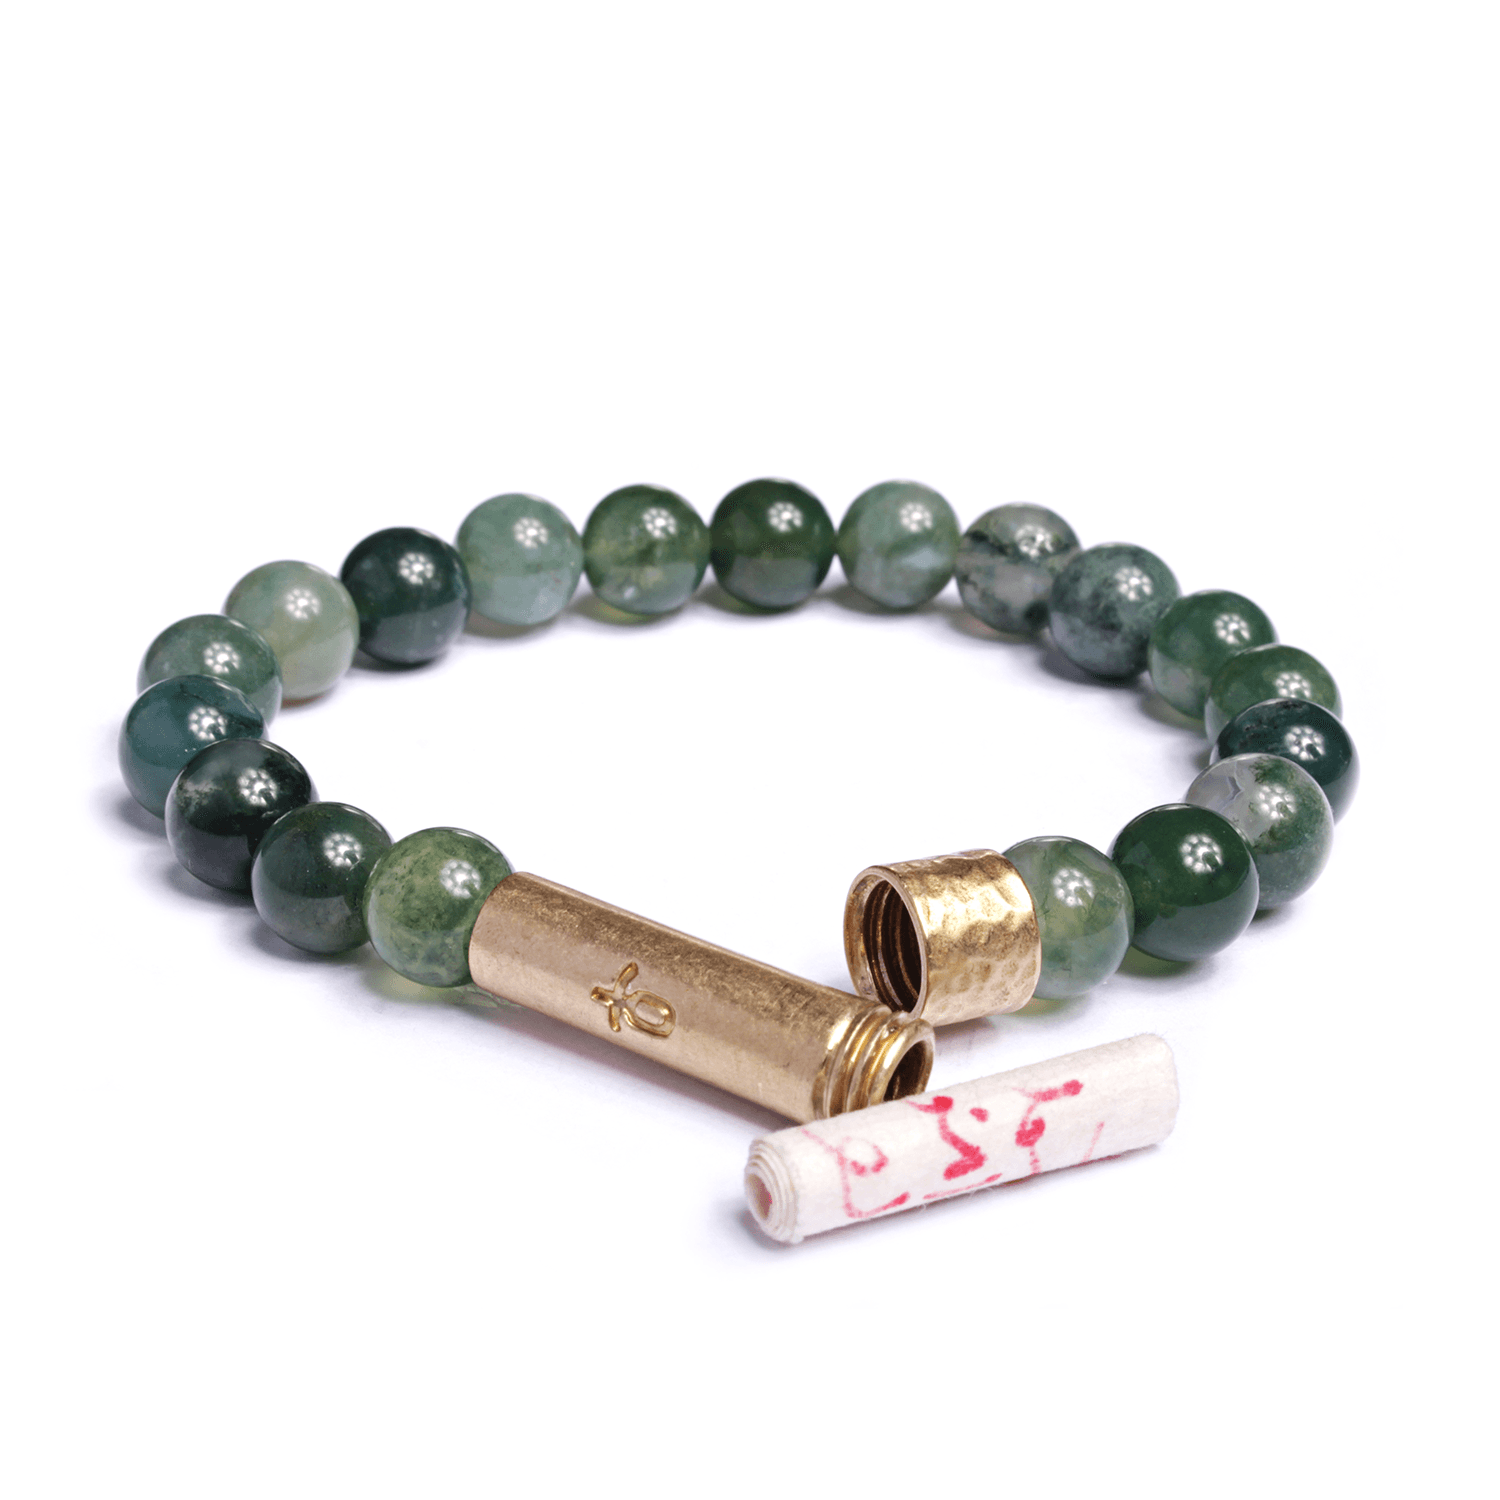 Polished Grass Agate Bracelet